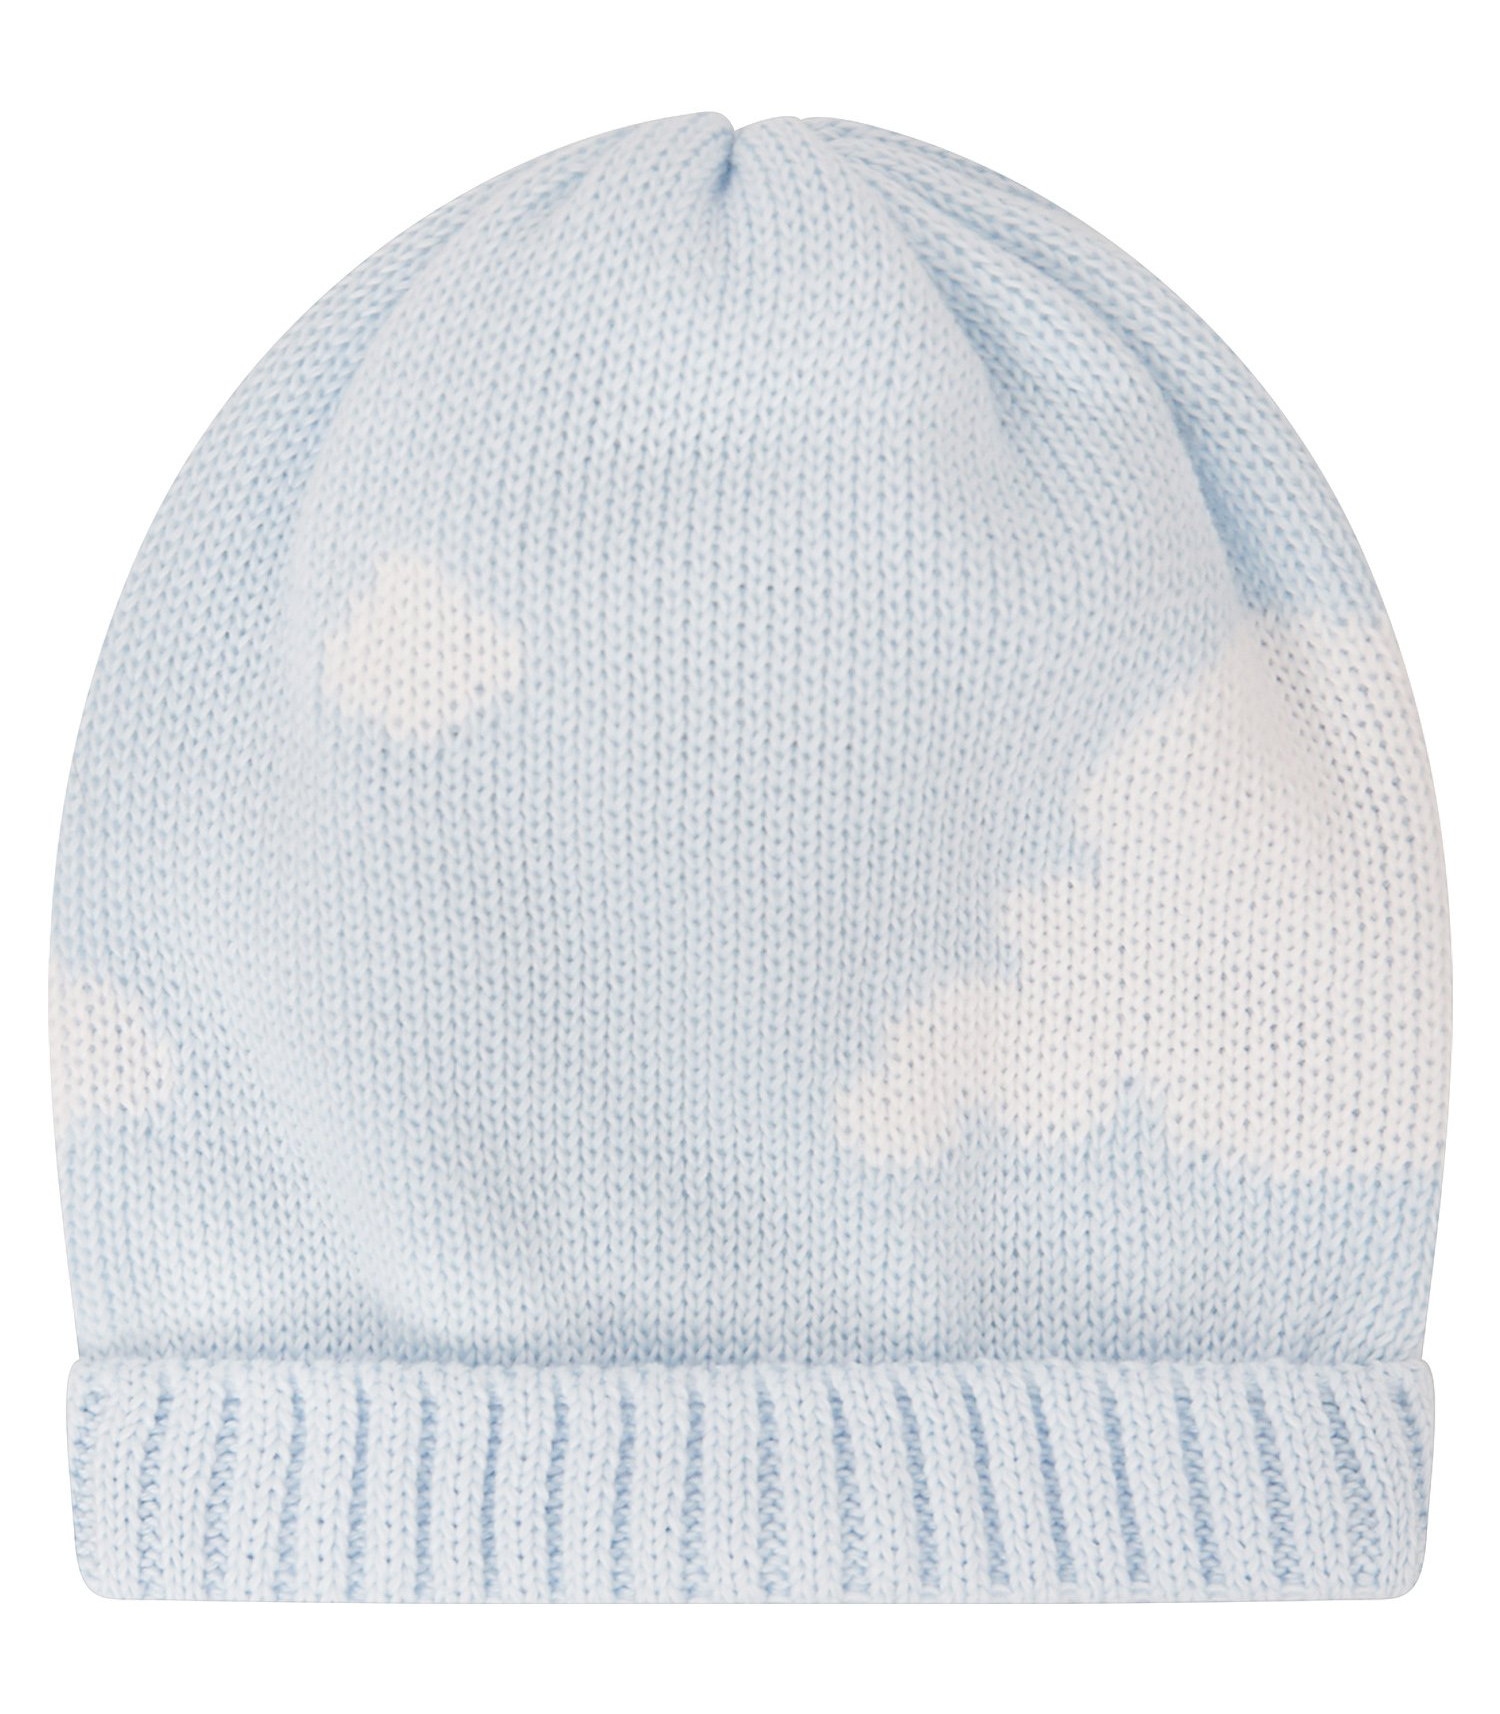 Little Bear Light blue hat with clouds